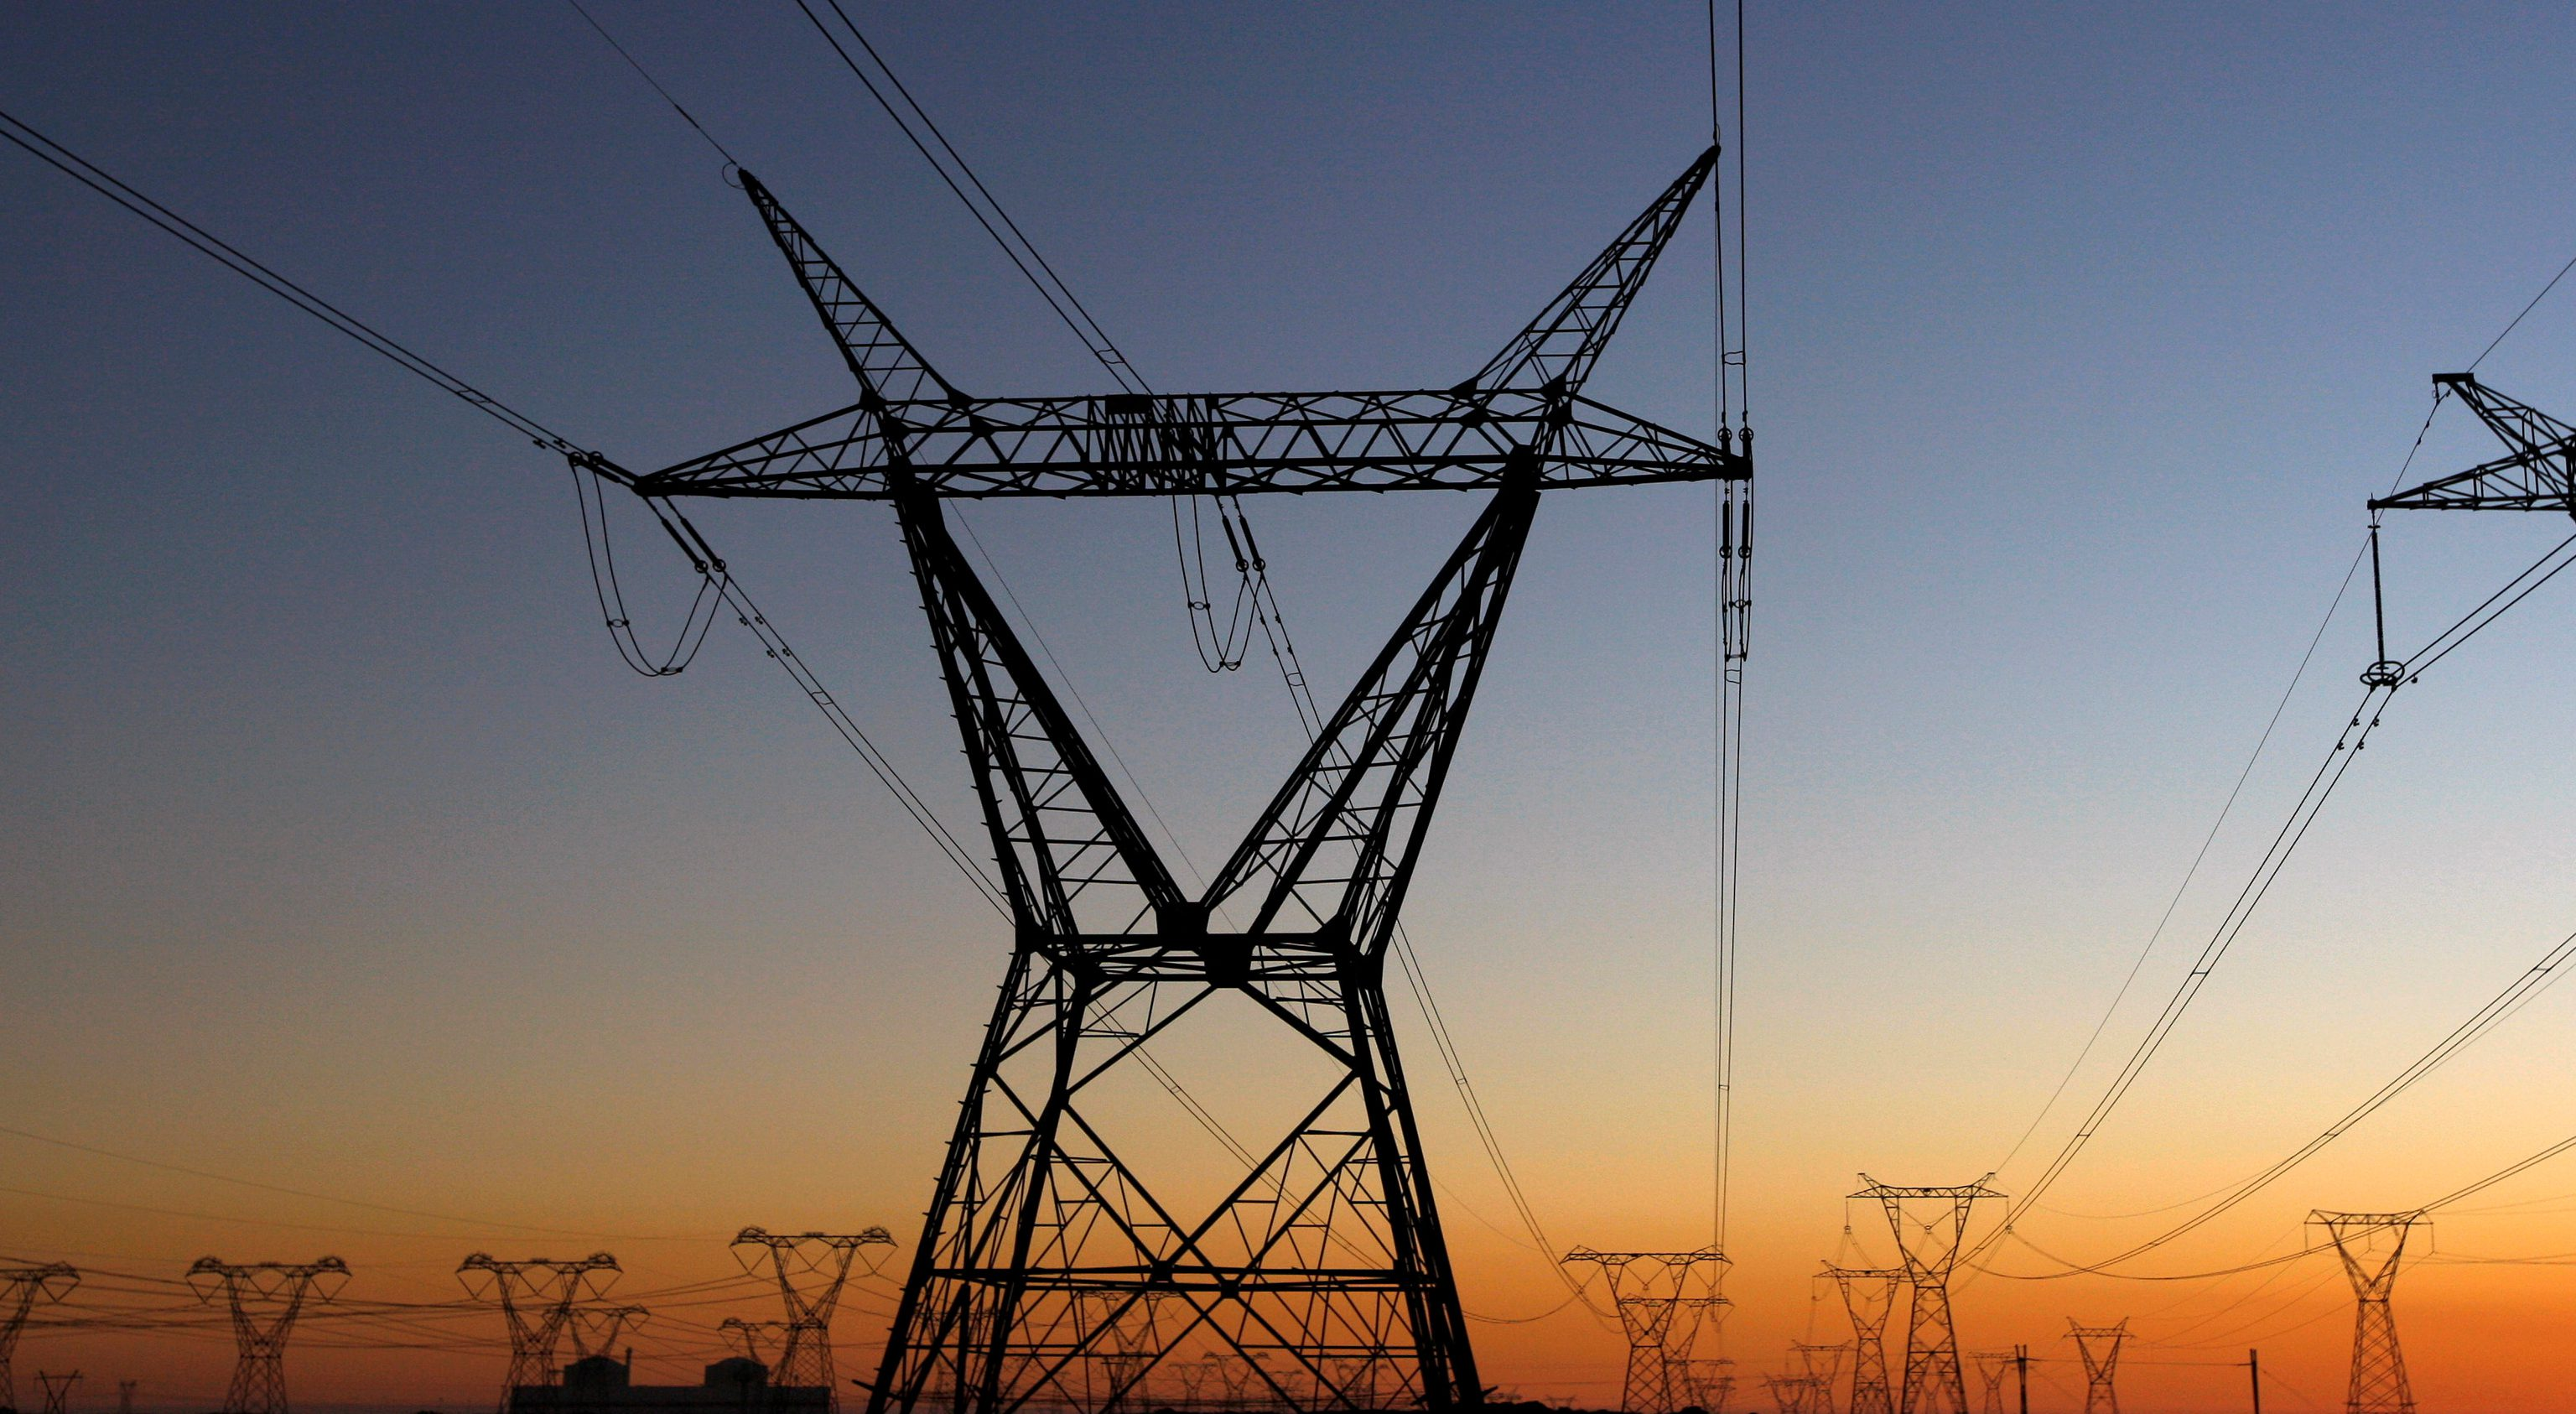 Electricity pylons carry power from Cape Town's Koeberg nuclear power plant, South Africa, July 17, 2009.